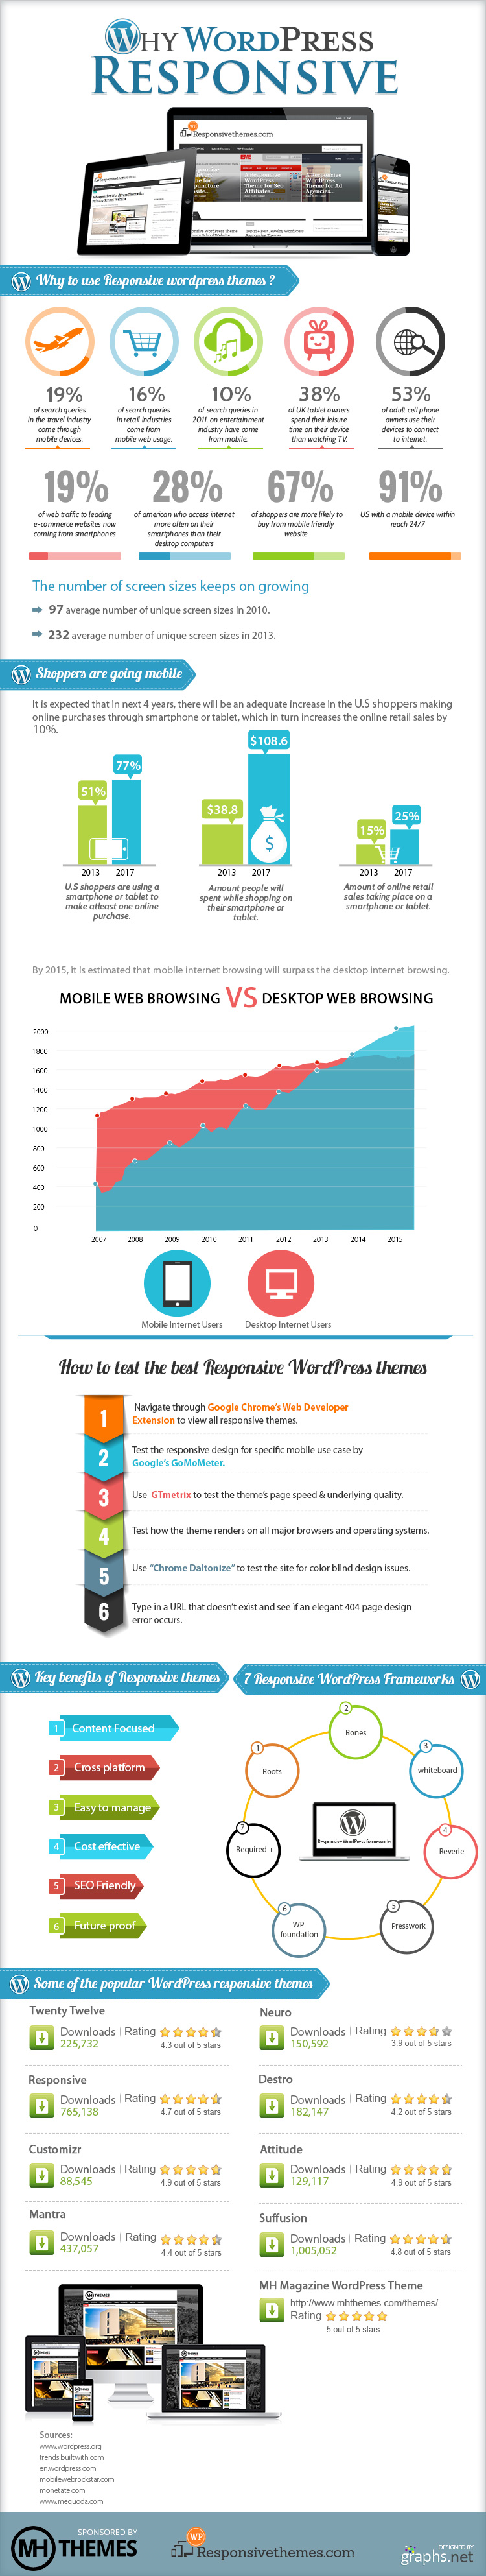 Top 5 Social-Graphics Page: Why WordPress Responsive Infographic www.seeyoubehindthelens.com